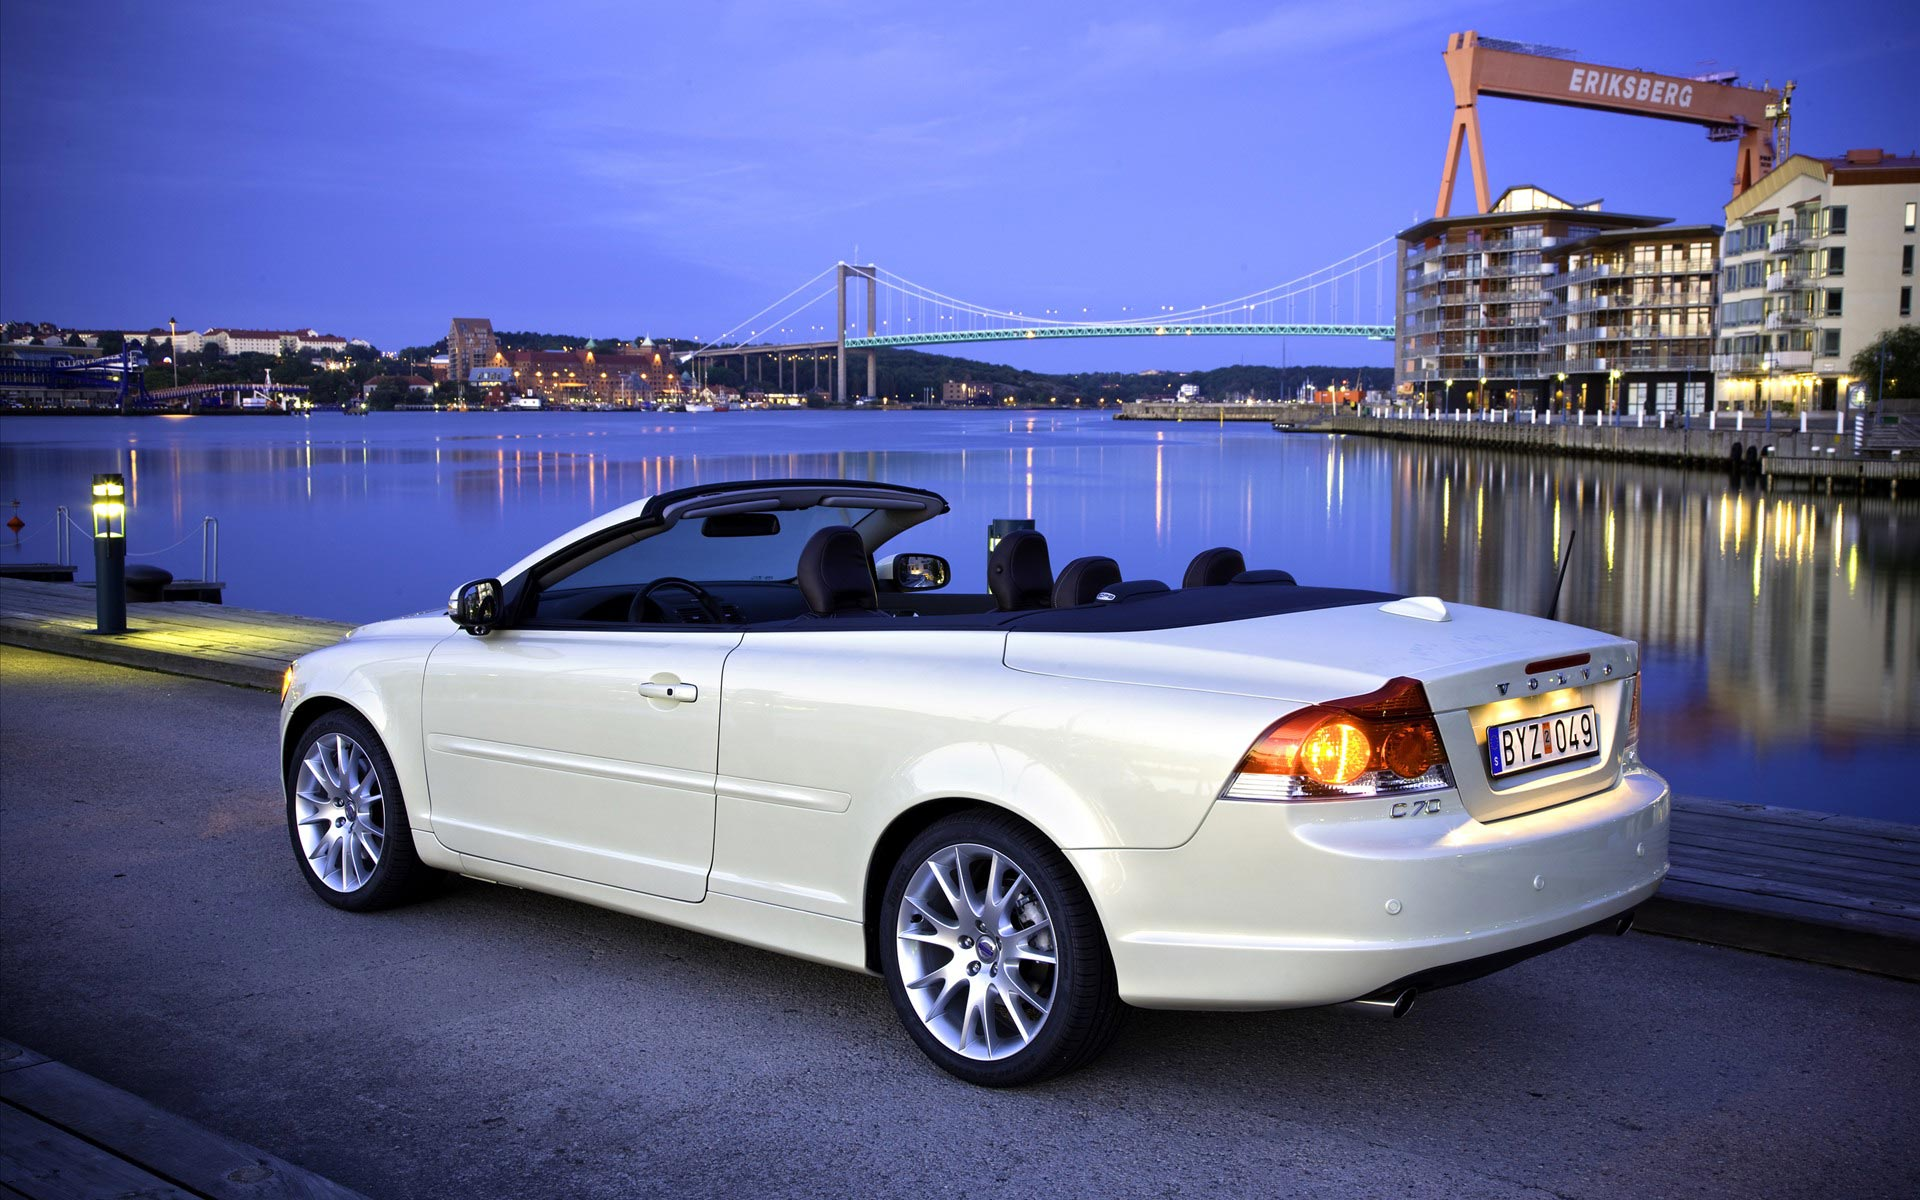 volvo c70 coup technical details history photos on better parts ltd. Black Bedroom Furniture Sets. Home Design Ideas